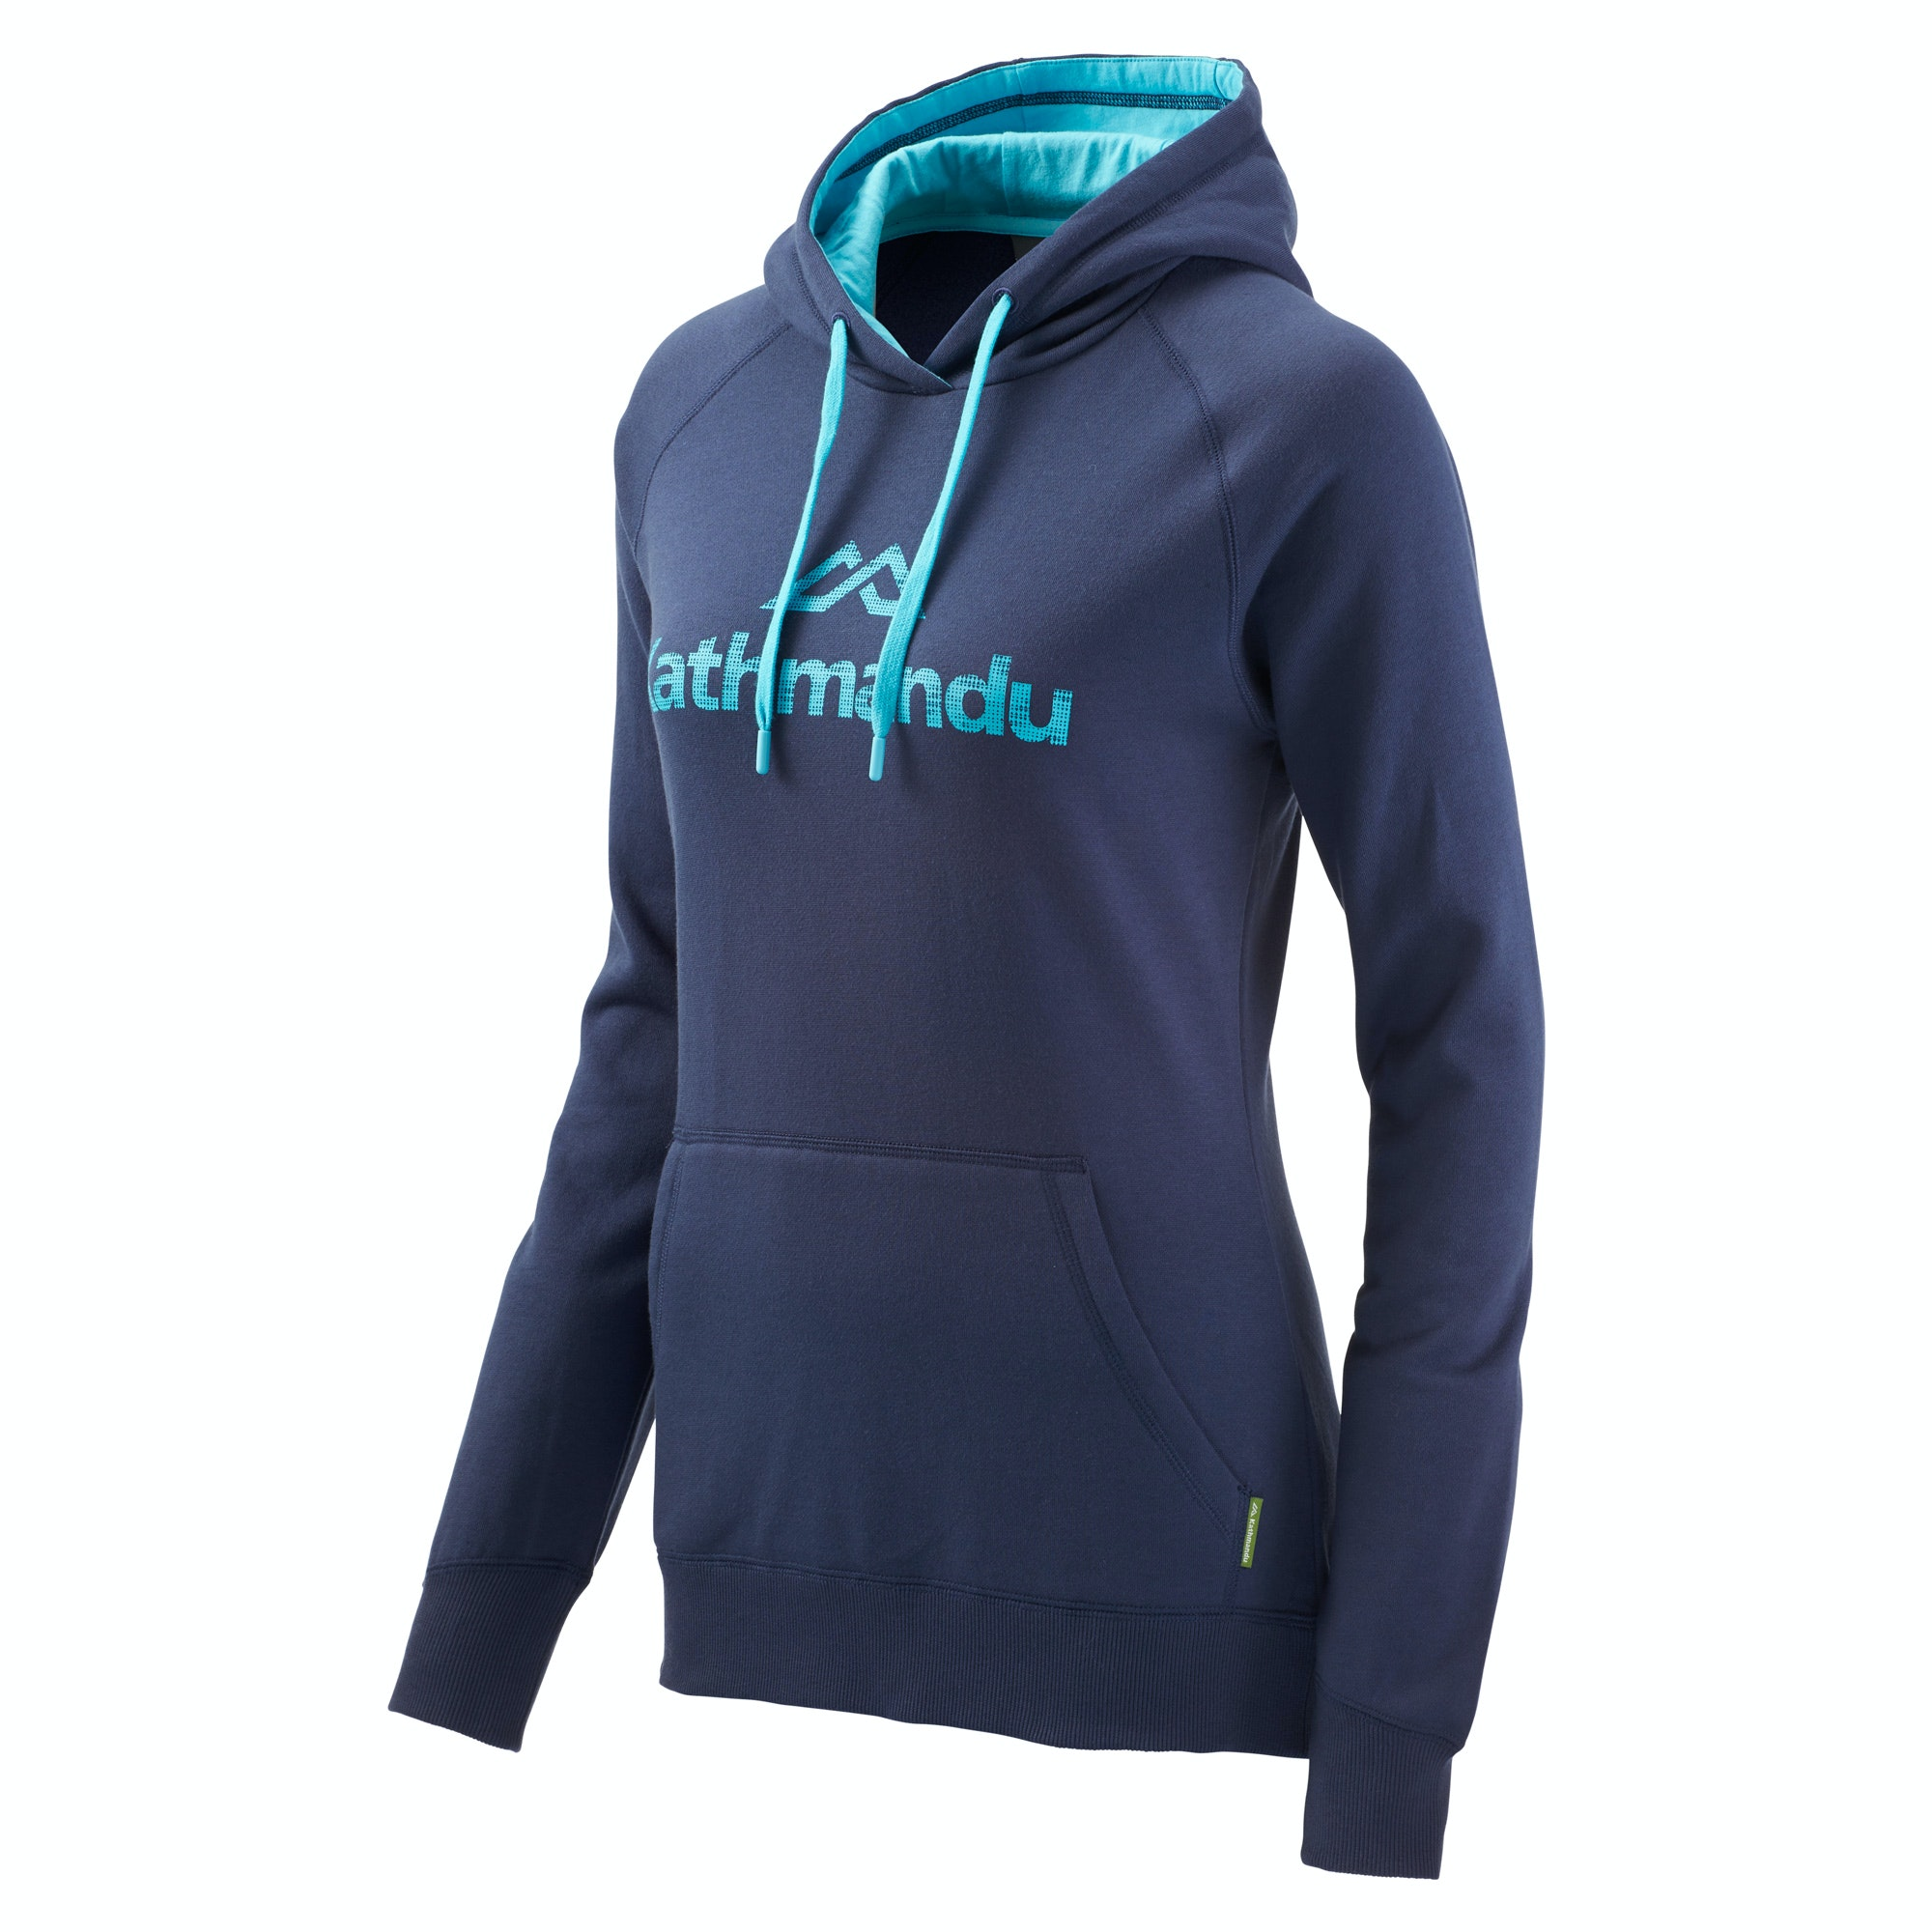 Kathmandu Women's Hooded Pullover v2 - Moonlight/Pacific Blue